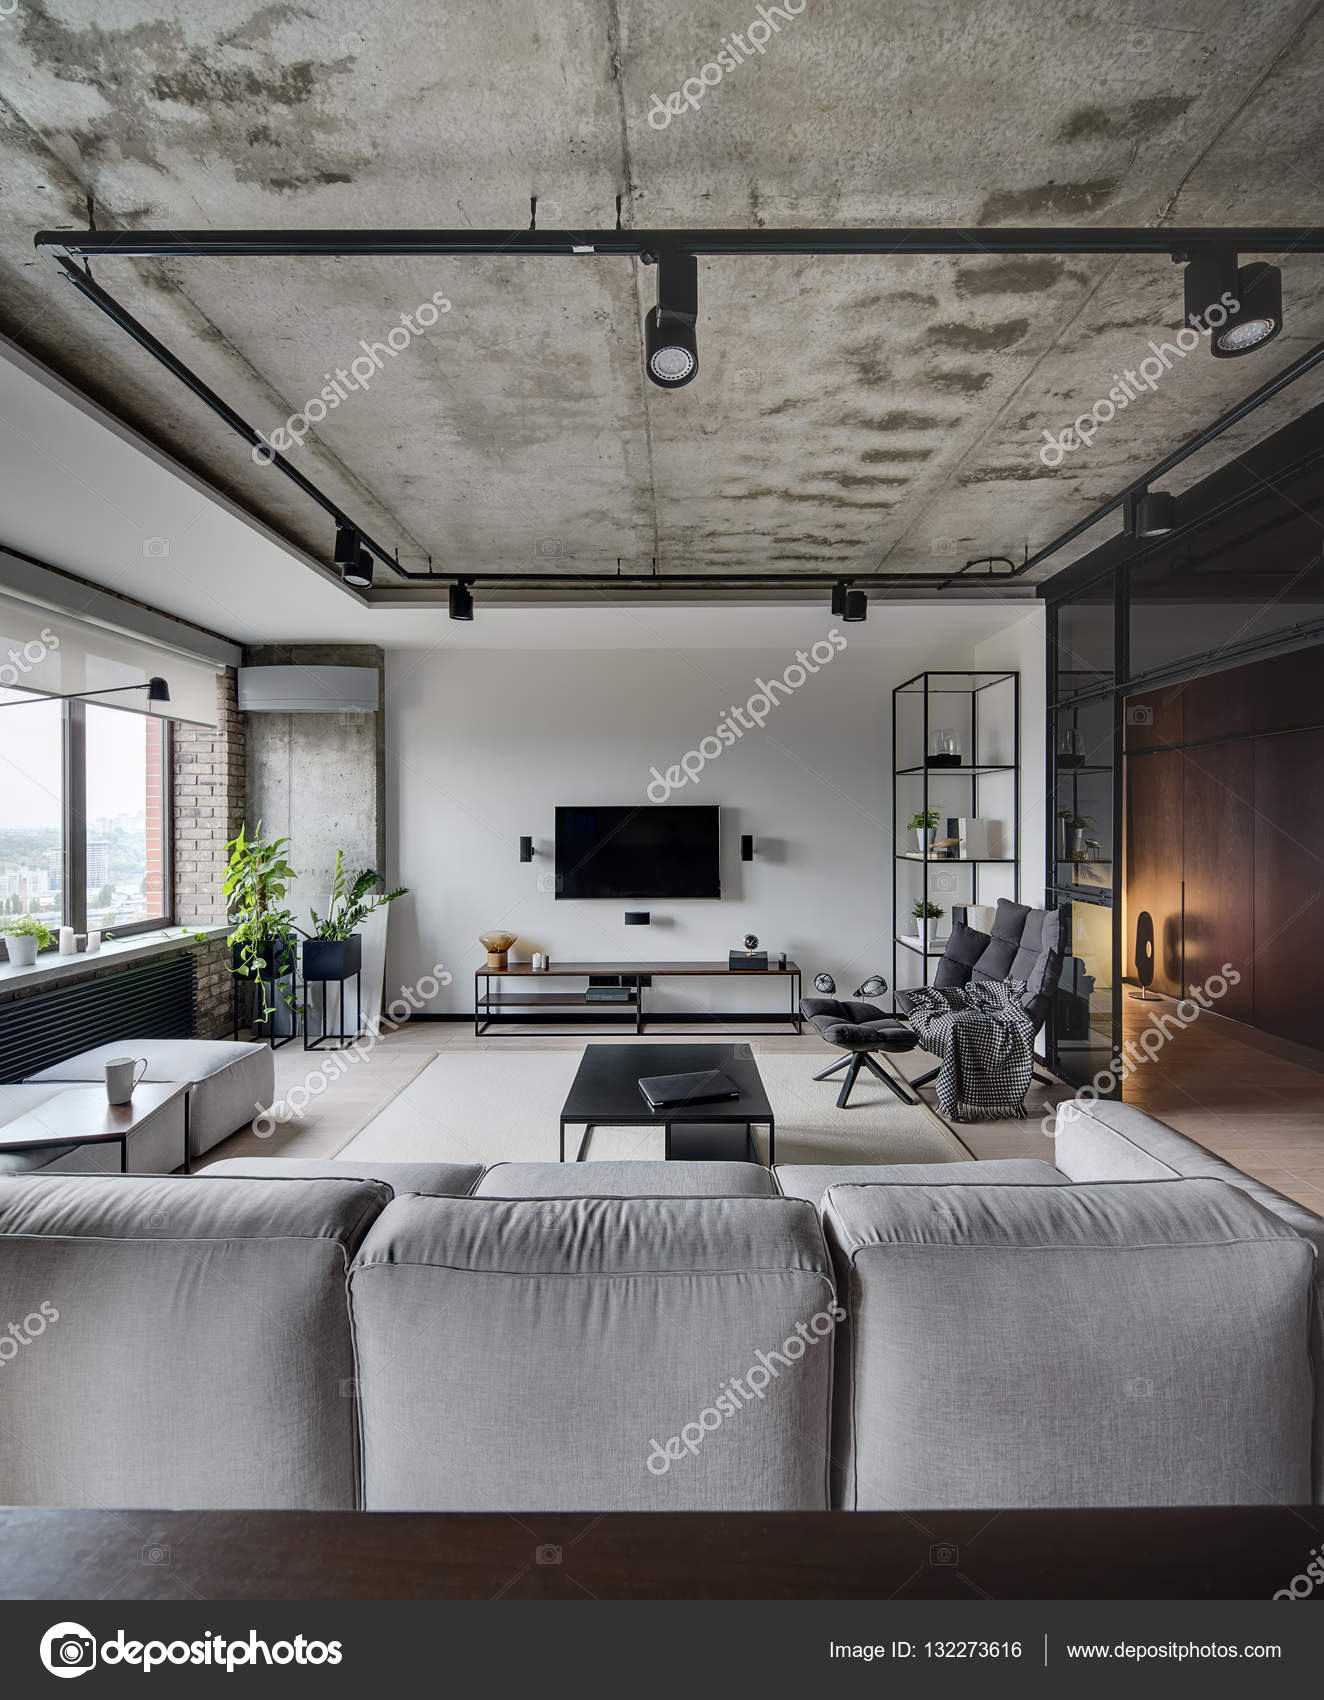 Loft Style Sitting Room With White, Brick And Concrete Walls. There Is Sofa,  Tables, Chair, Armchair, Shelves, Speakers, TV And Rack Under It, Lamps.